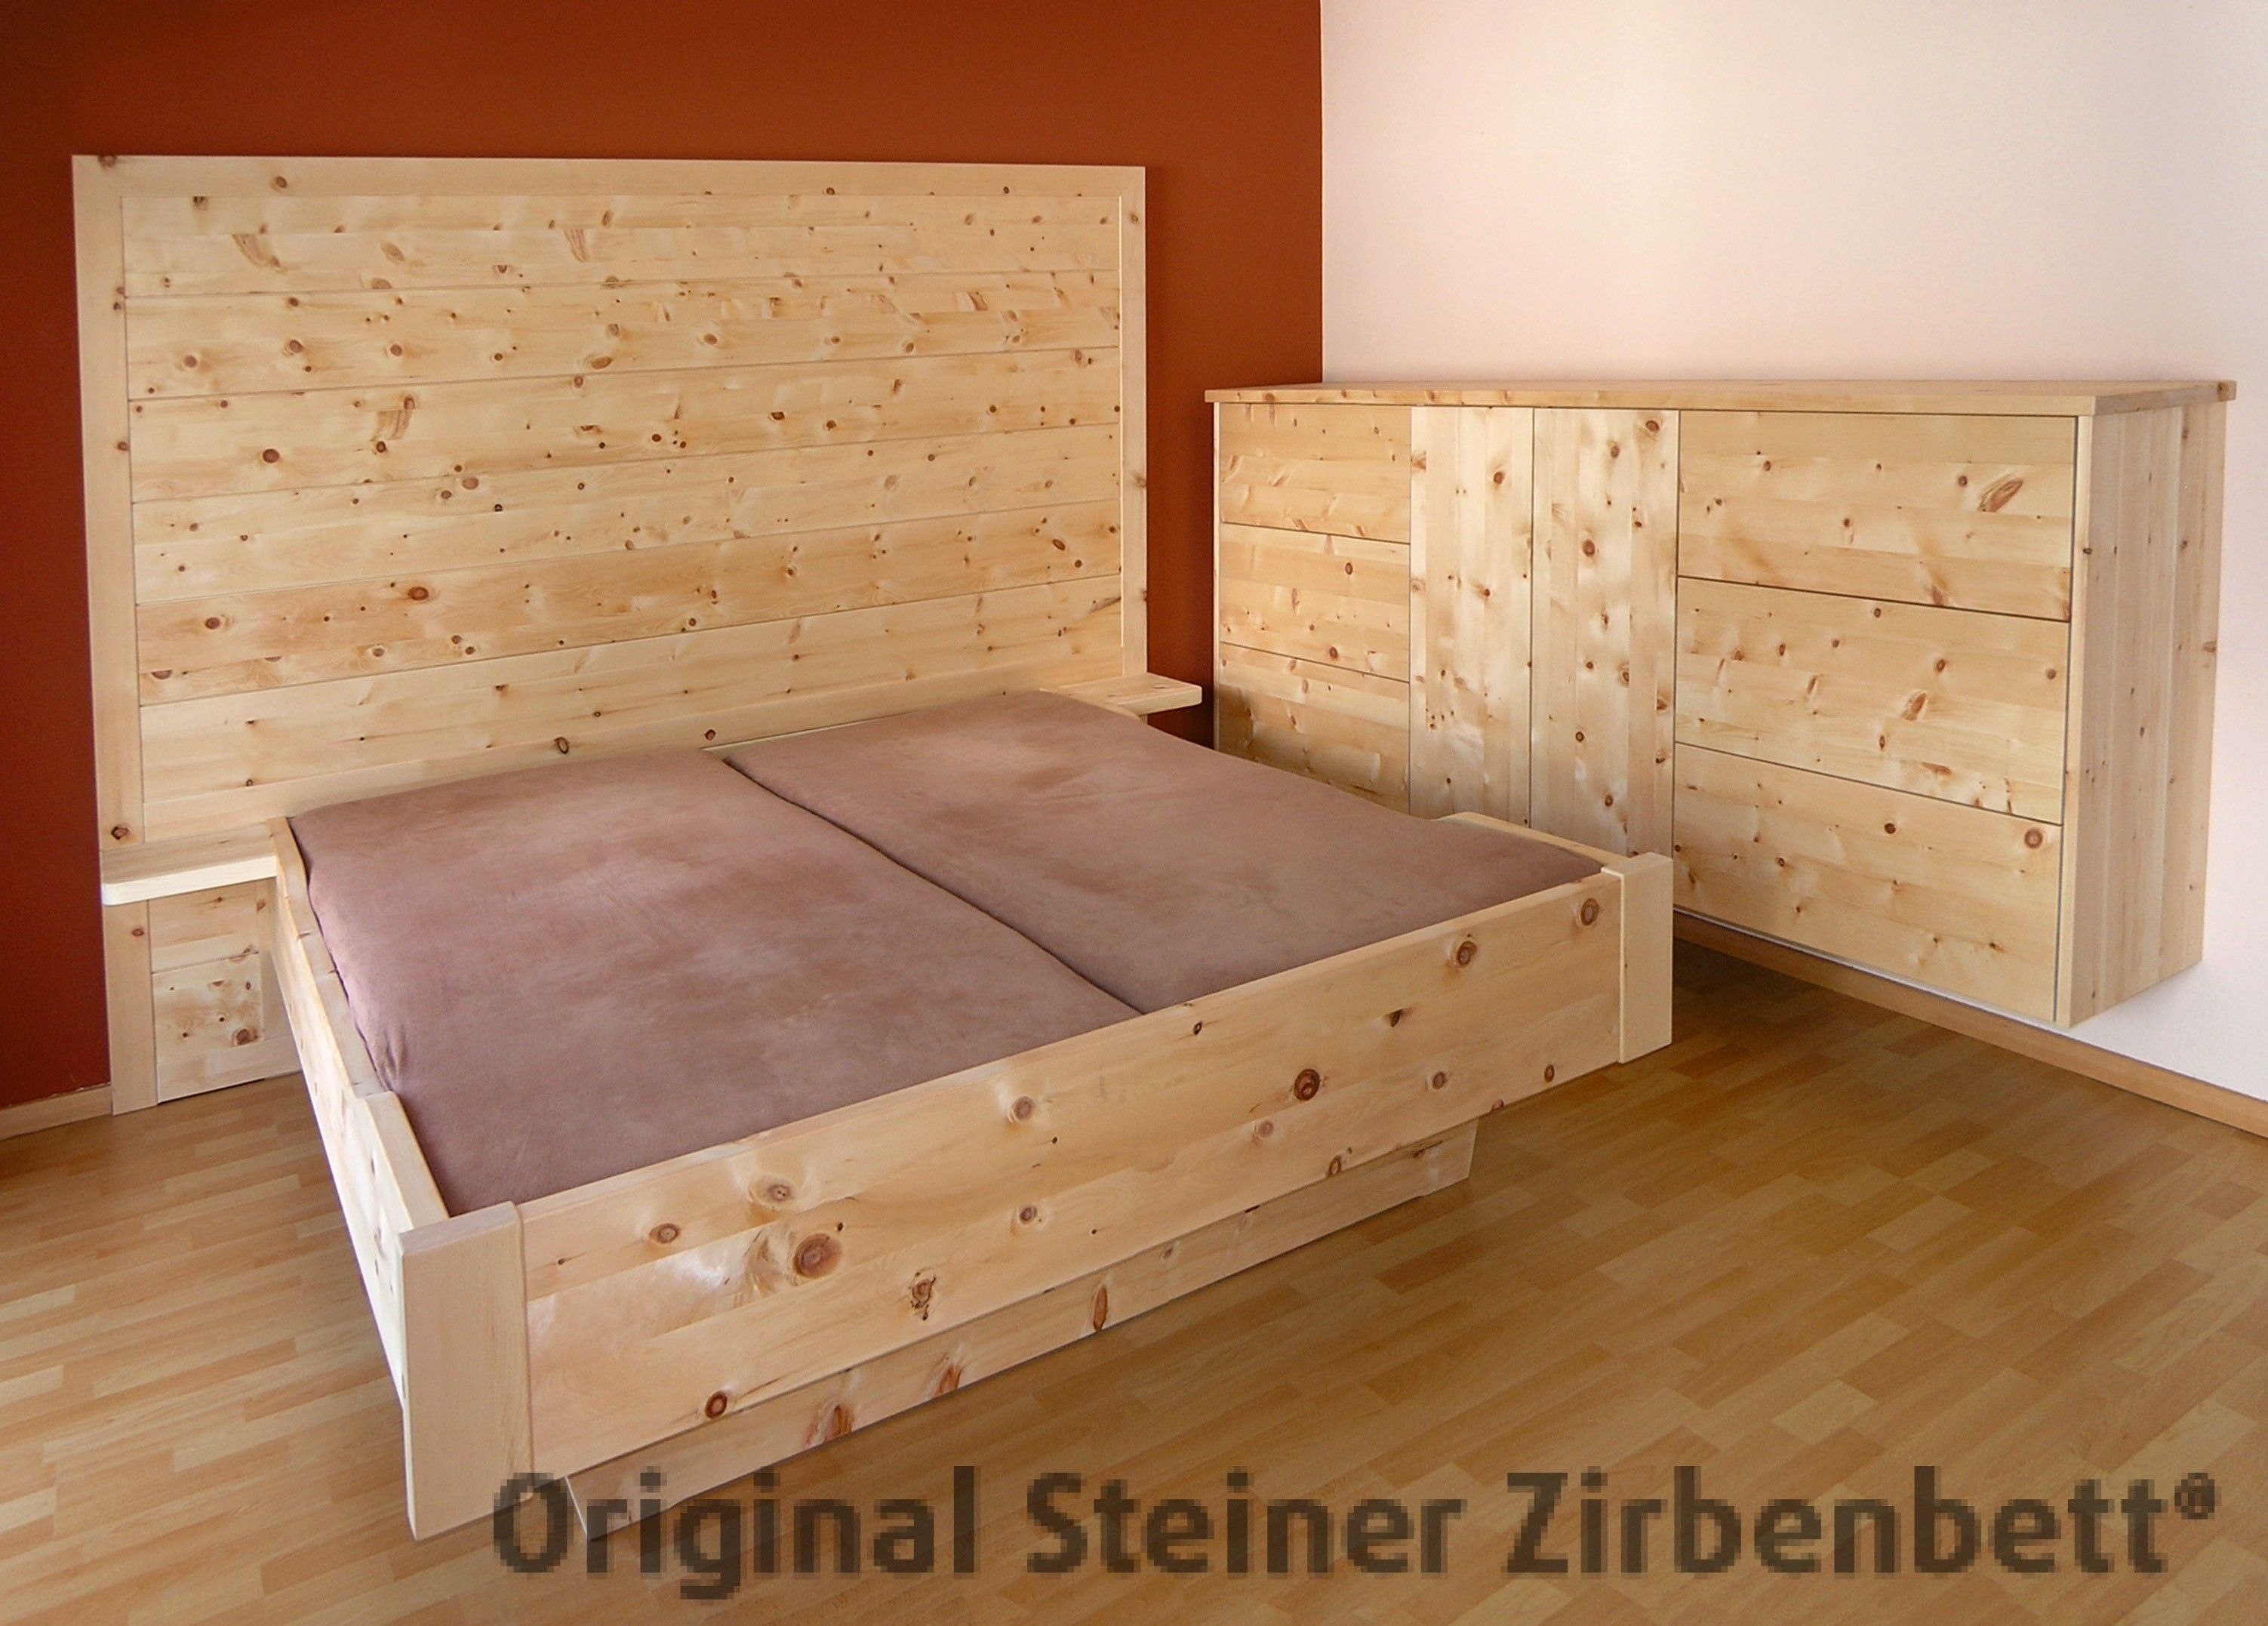 zirbenbett watzmann doppelbett massivholzbett zirbenbett schlafzimmer pinterest watzmann. Black Bedroom Furniture Sets. Home Design Ideas